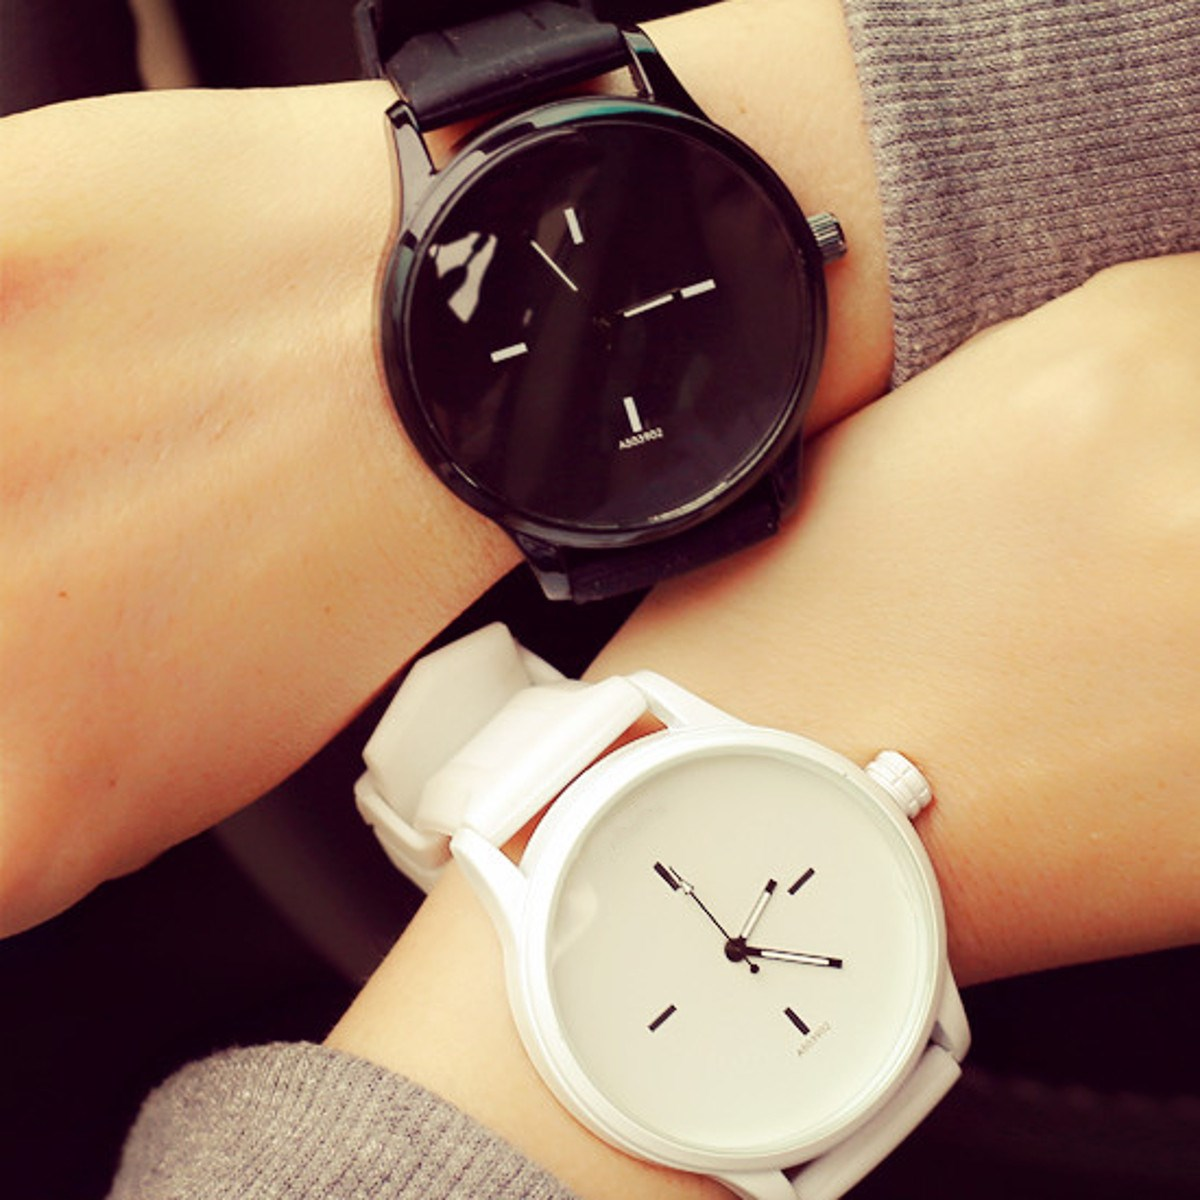 Hot Unisex Fashion Watch Lovers Silicone Sport Quartz Watches Student Women Men Simple Casual Wristwatches Clock White Black 2016 fashion lady wrist watch casual silicone watches with quartz unisex wristwatches for men women gift silicona children mujer